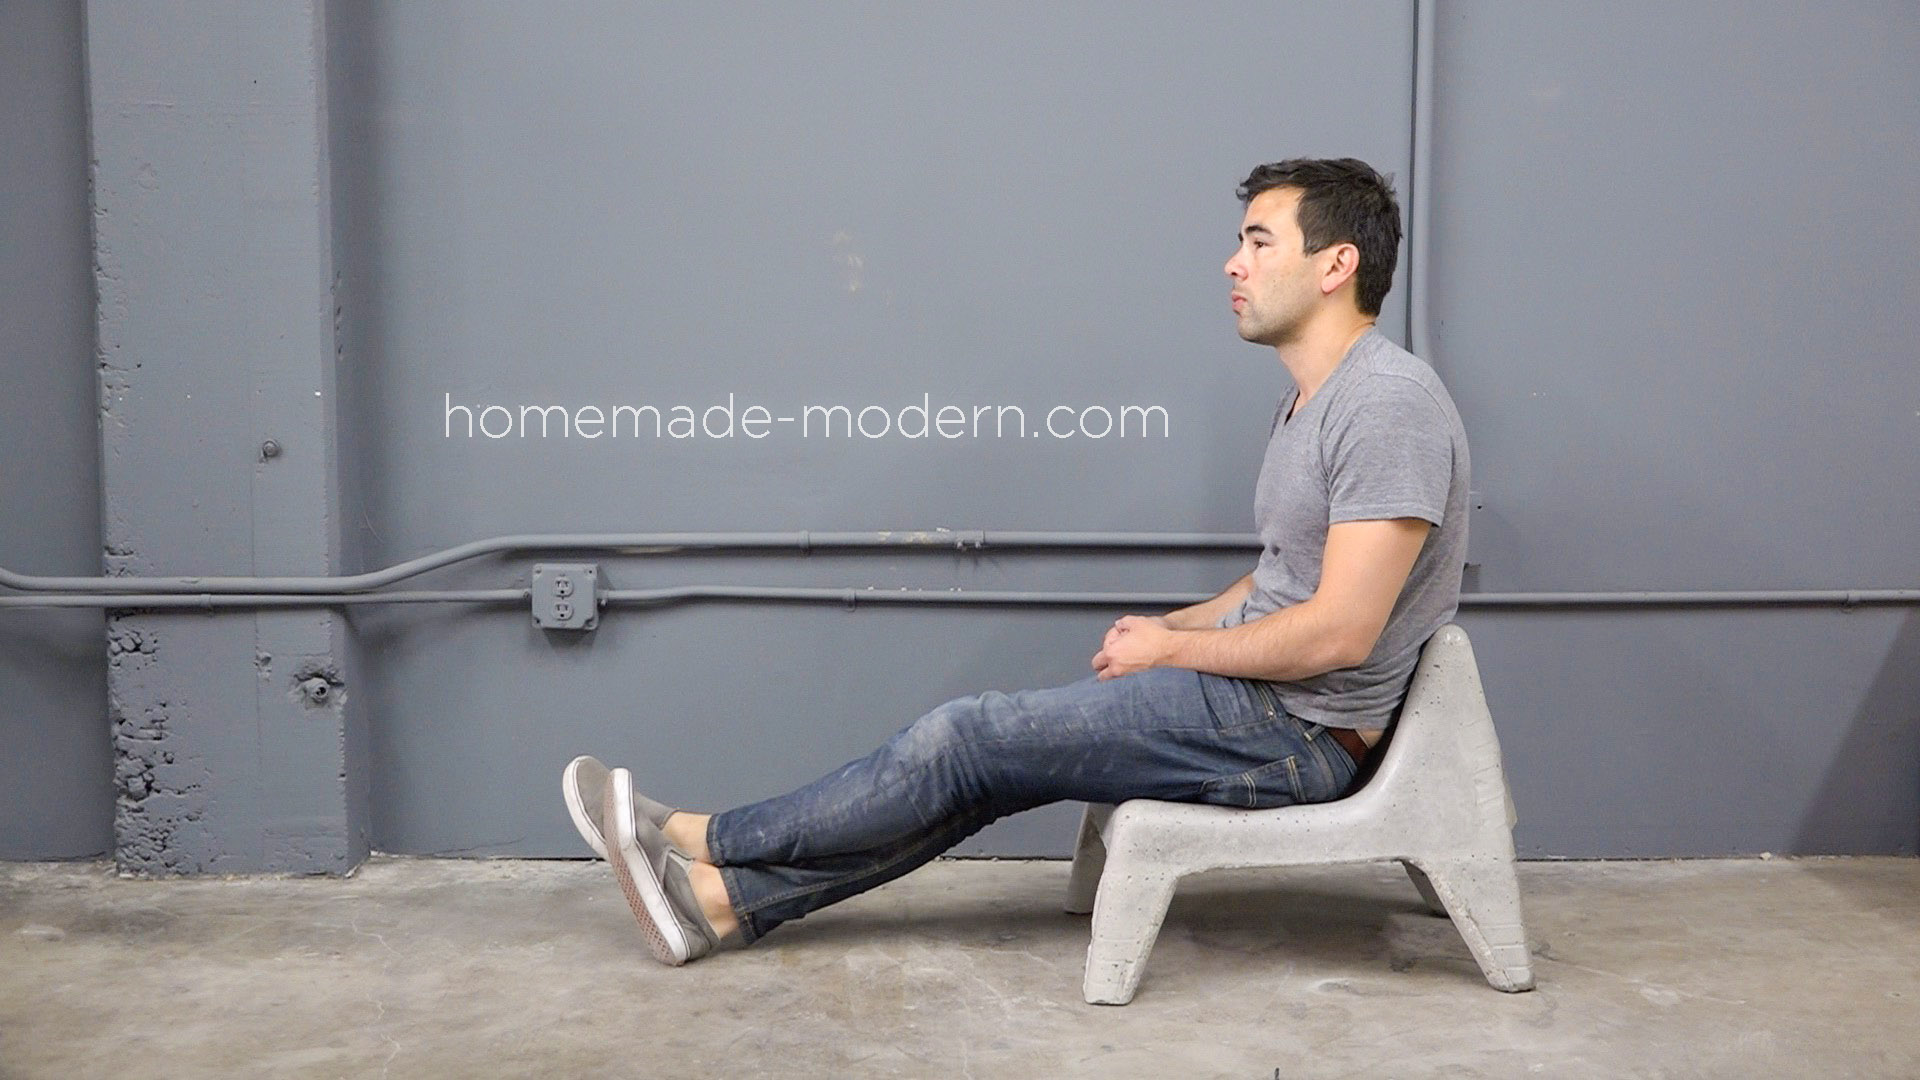 This DIY Concrete Chair was cast in a plastic chair from IKEA. For more information go to HomeMade-Modern.com